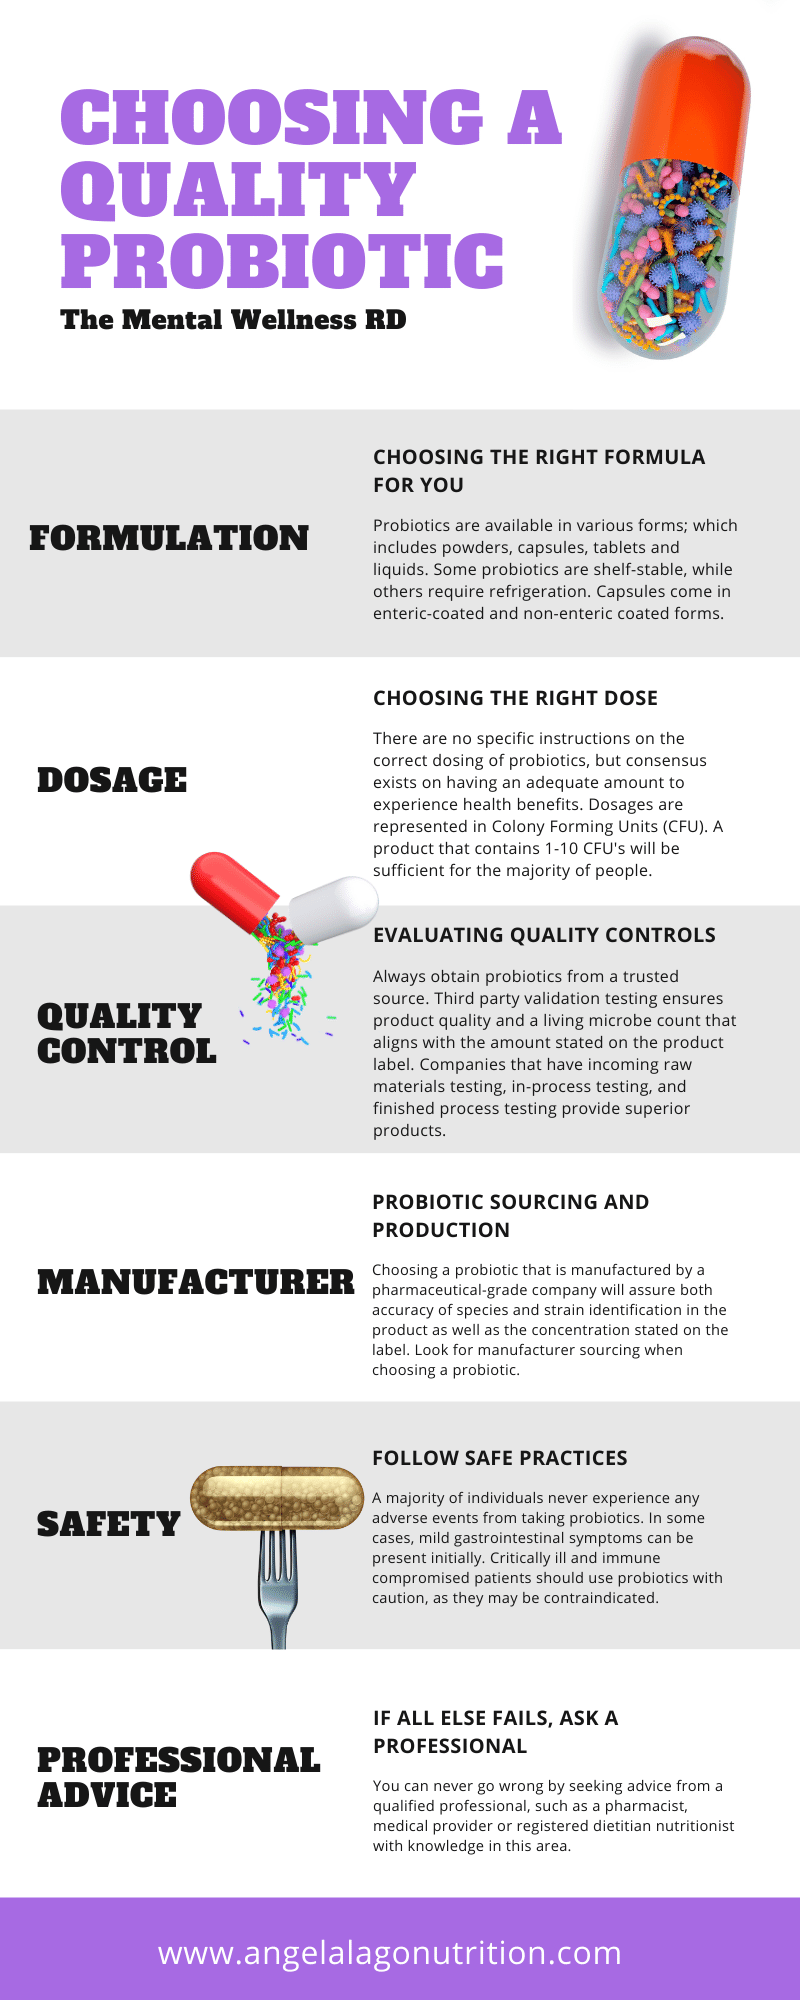 Infographic showing how to choose a quality probiotic